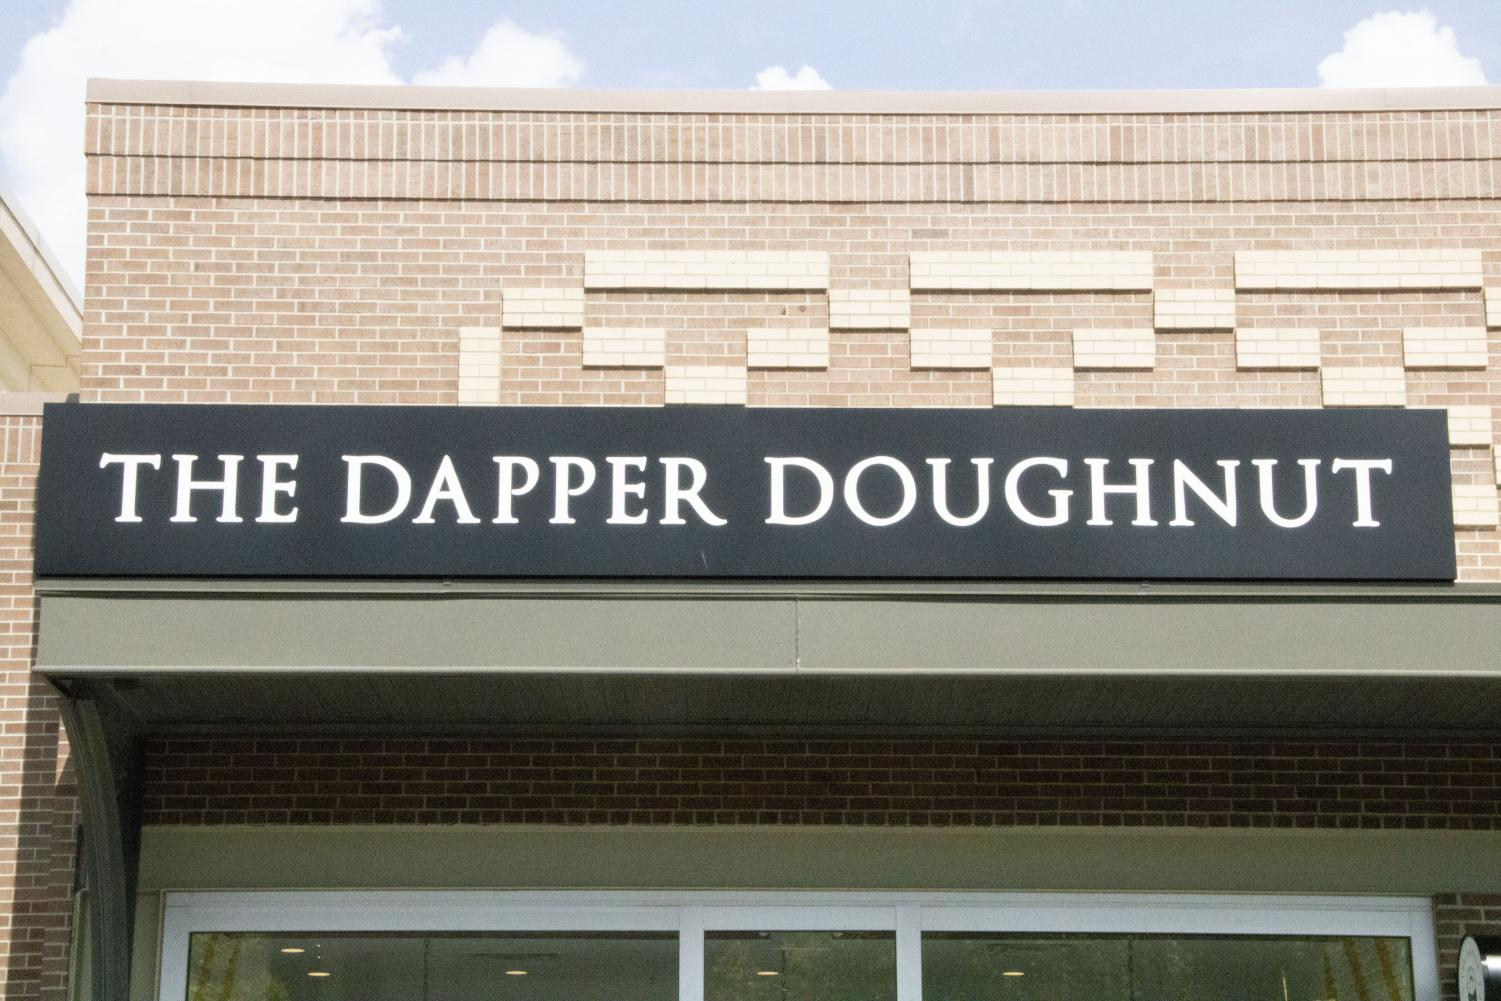 Dapper Doughnuts is located at 1811 Village W Pky, O-123 Kansas City, Kan. 66111.